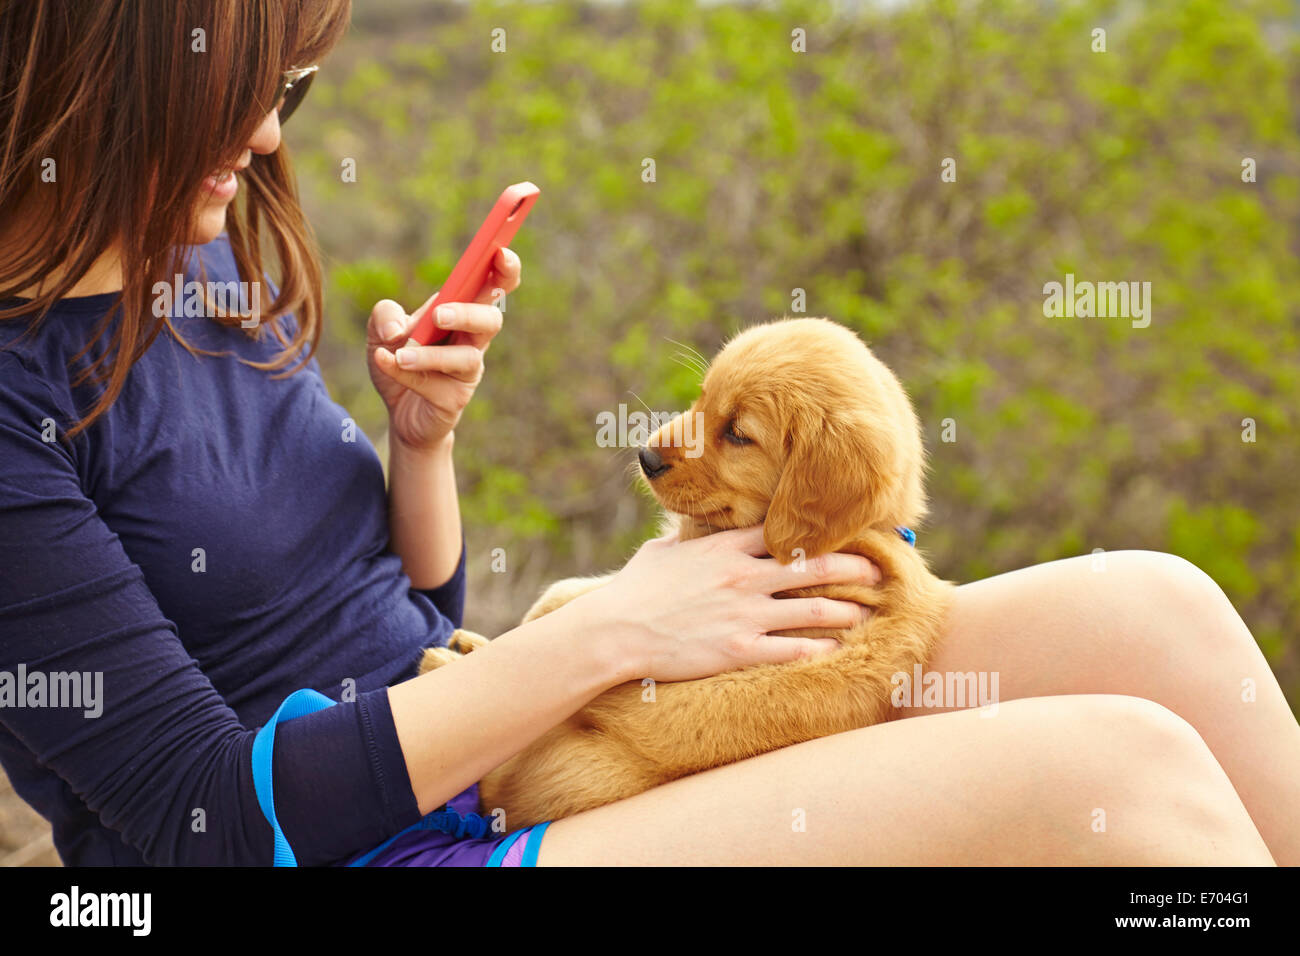 Young woman taking photograph of labrador puppy sitting on lap - Stock Image